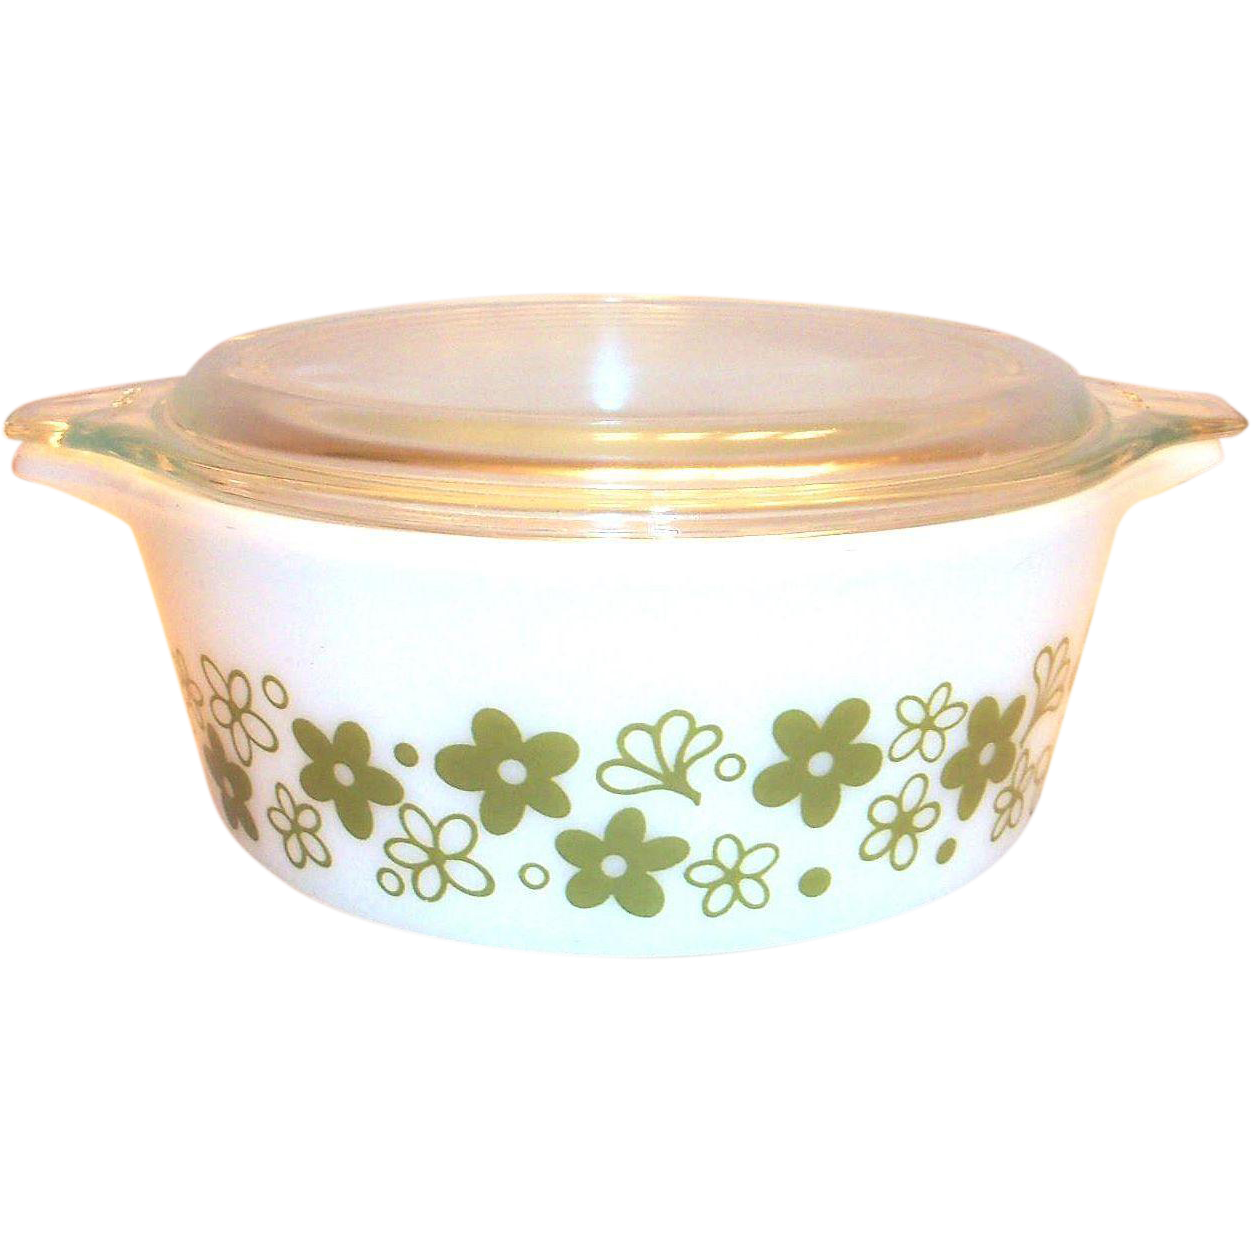 Vintage Pyrex Spring Blossom 1 1/2 Pt. Covered Glass Casserole